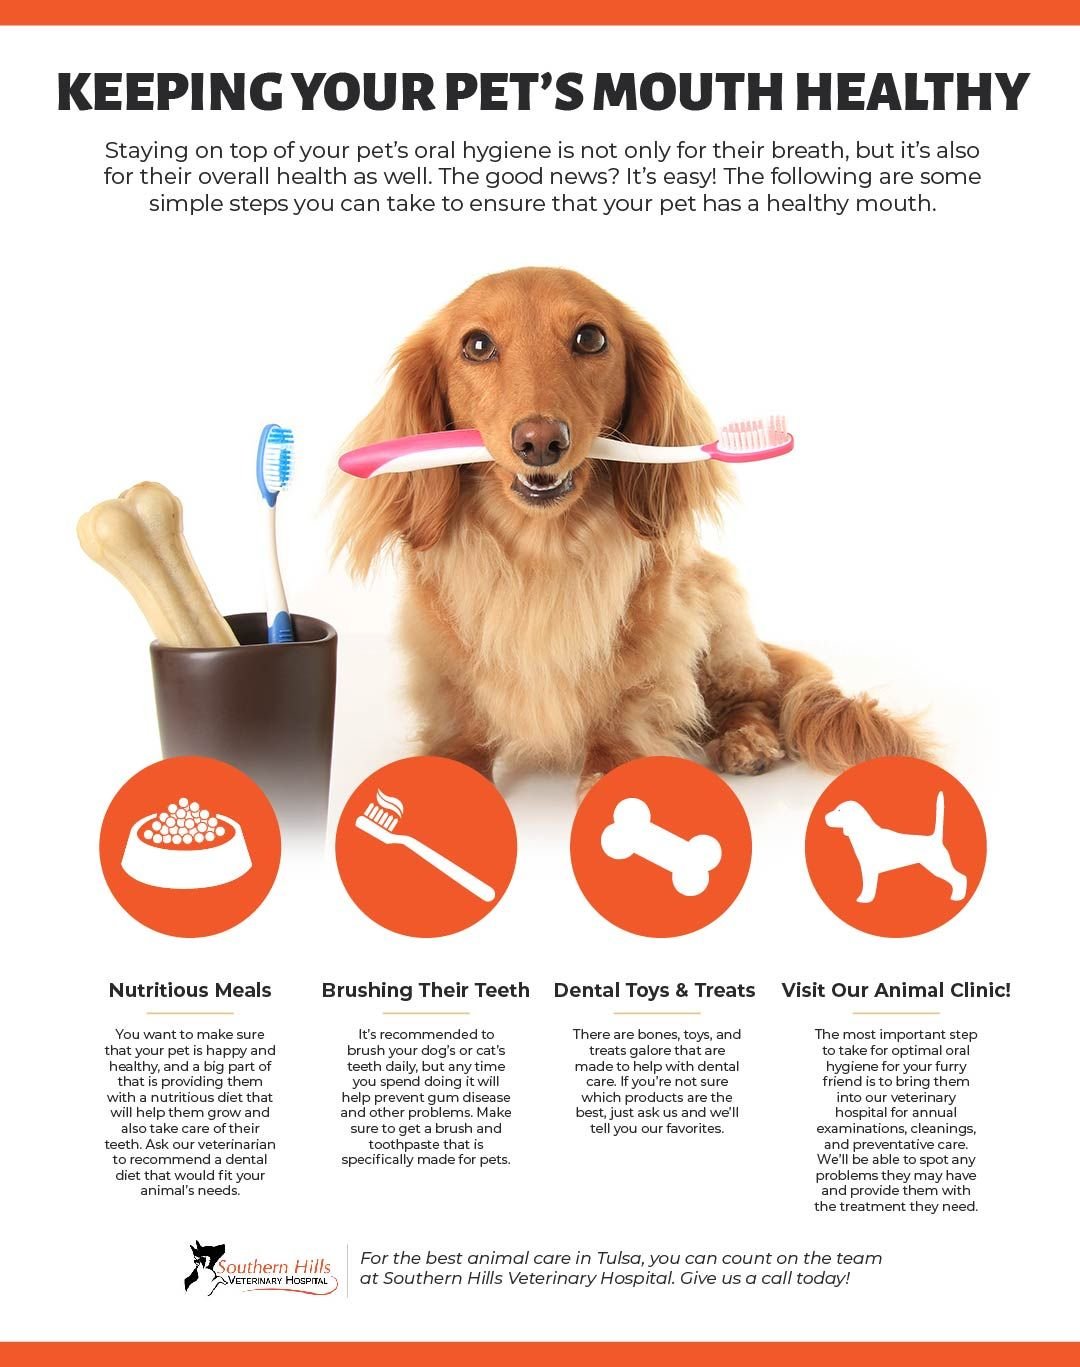 Keeping Pet's Mouth Healthy